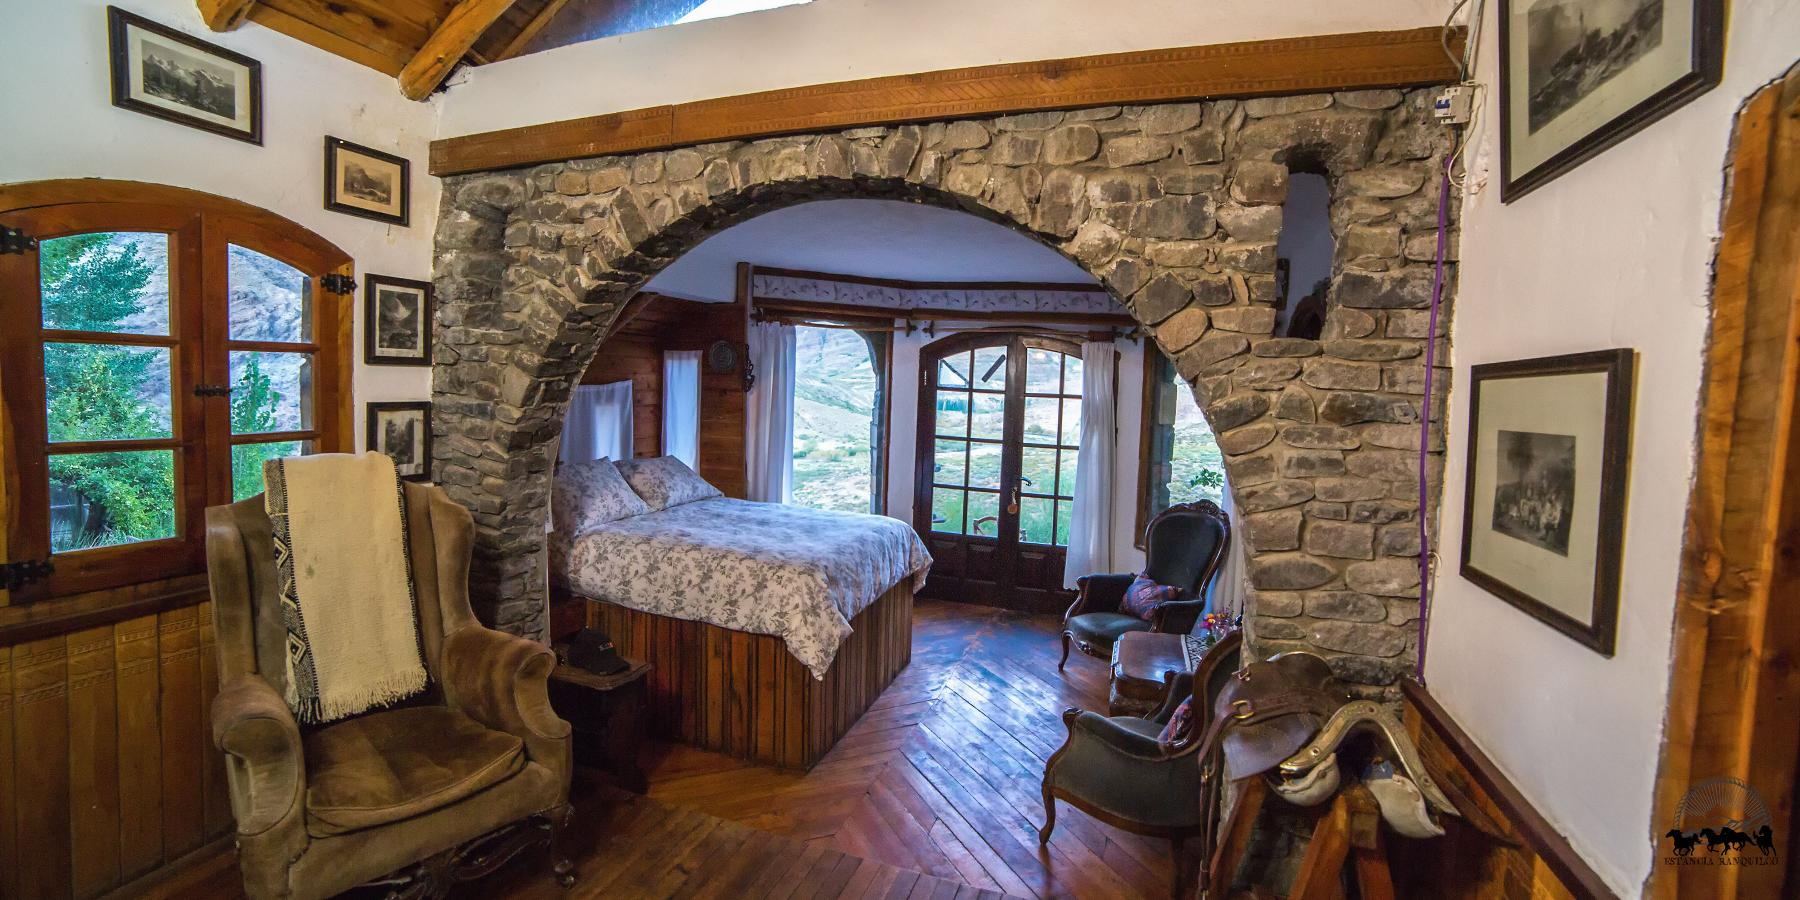 Image of the handcrafted stonework accommodation - The Castle Room